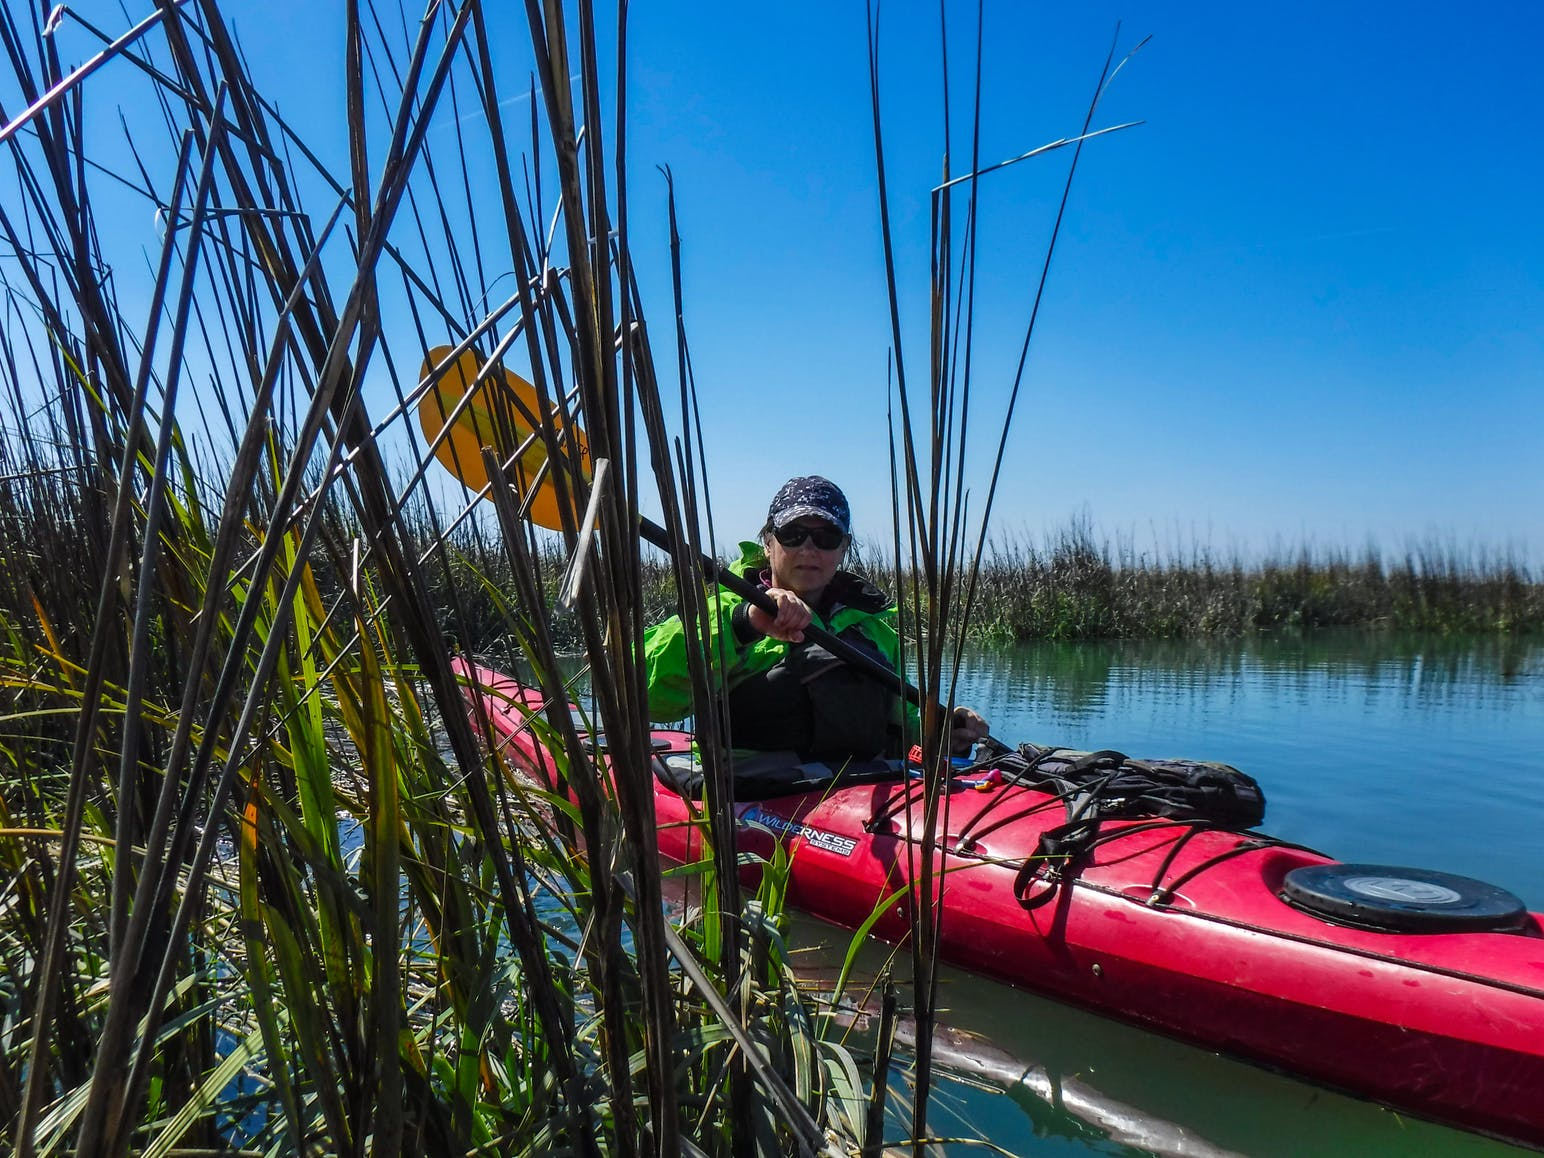 kayakers among the reeds